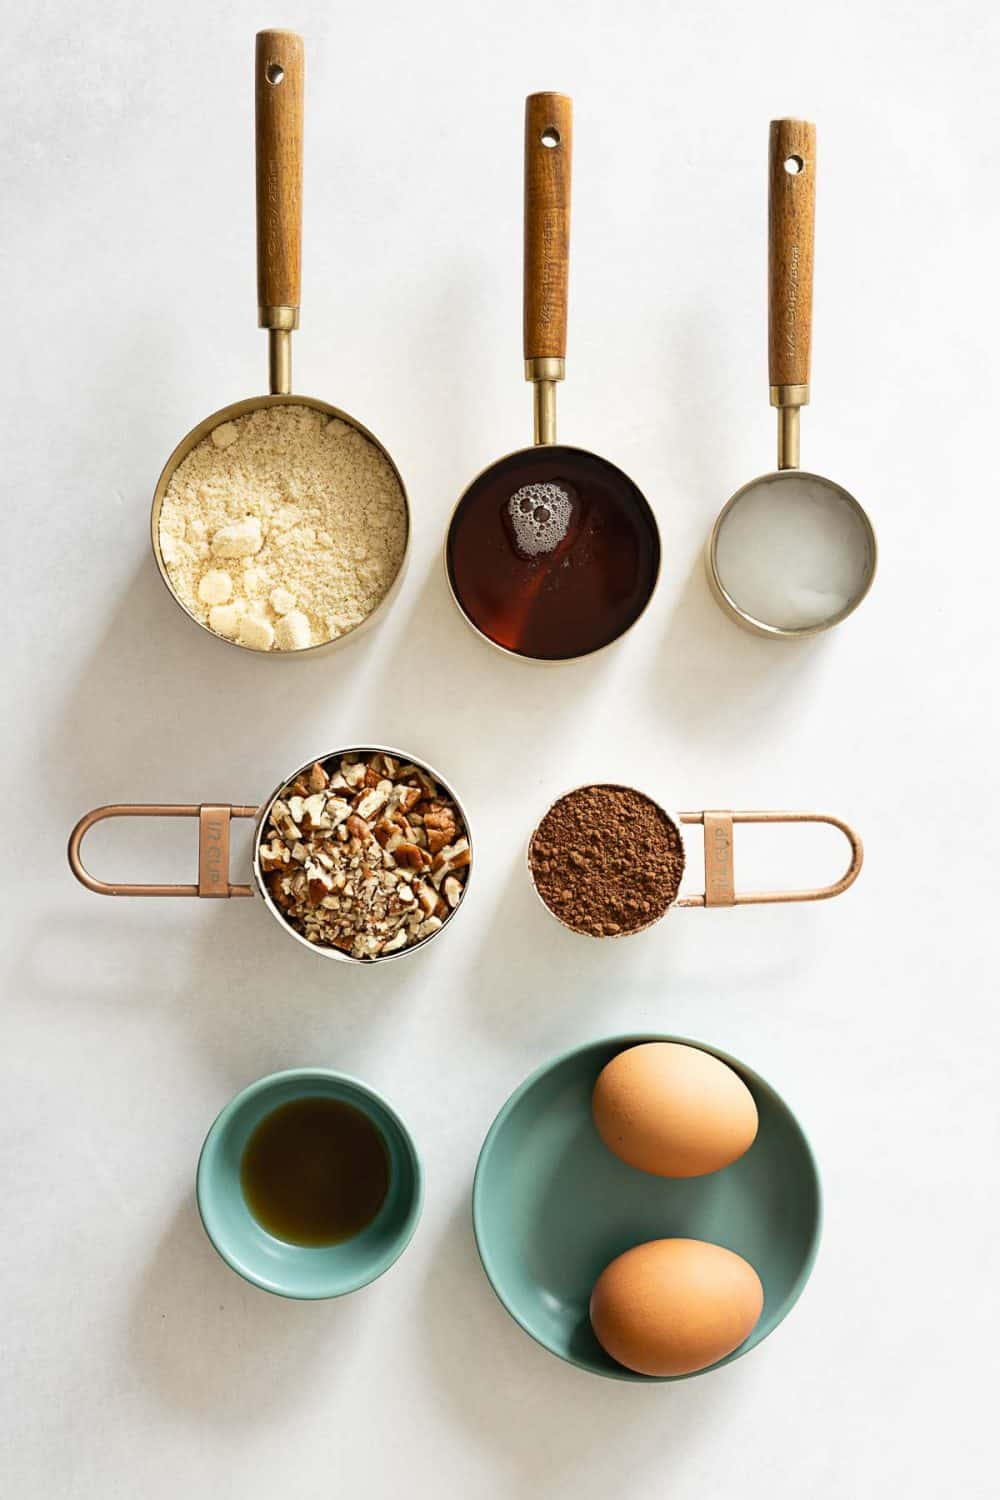 7 Brownie Ingredients in measuring cups on a kitchen counter.